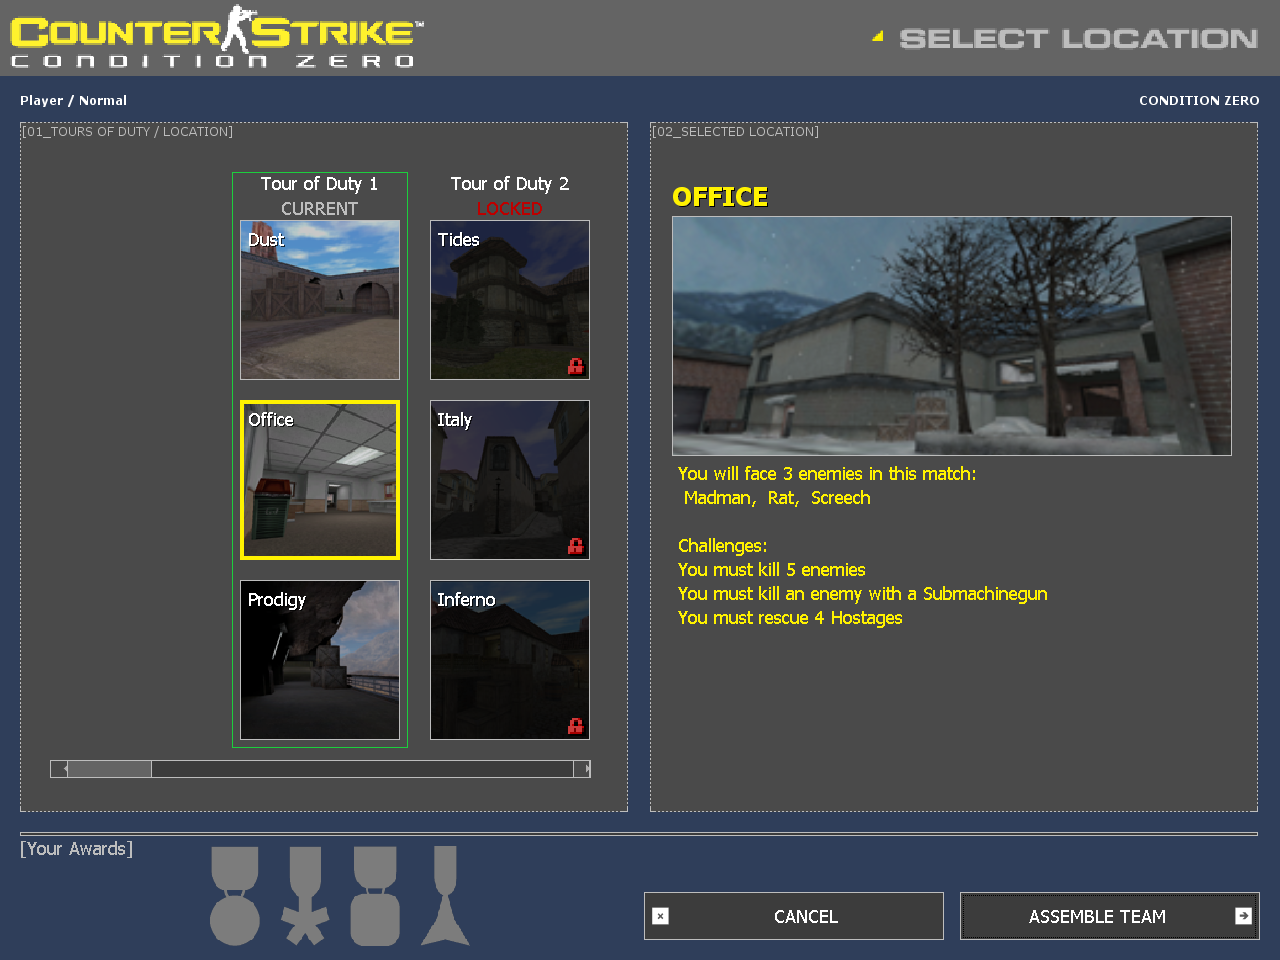 Counter strike condition zero counter strike wiki fandom tour of duty map selection menu gumiabroncs Images